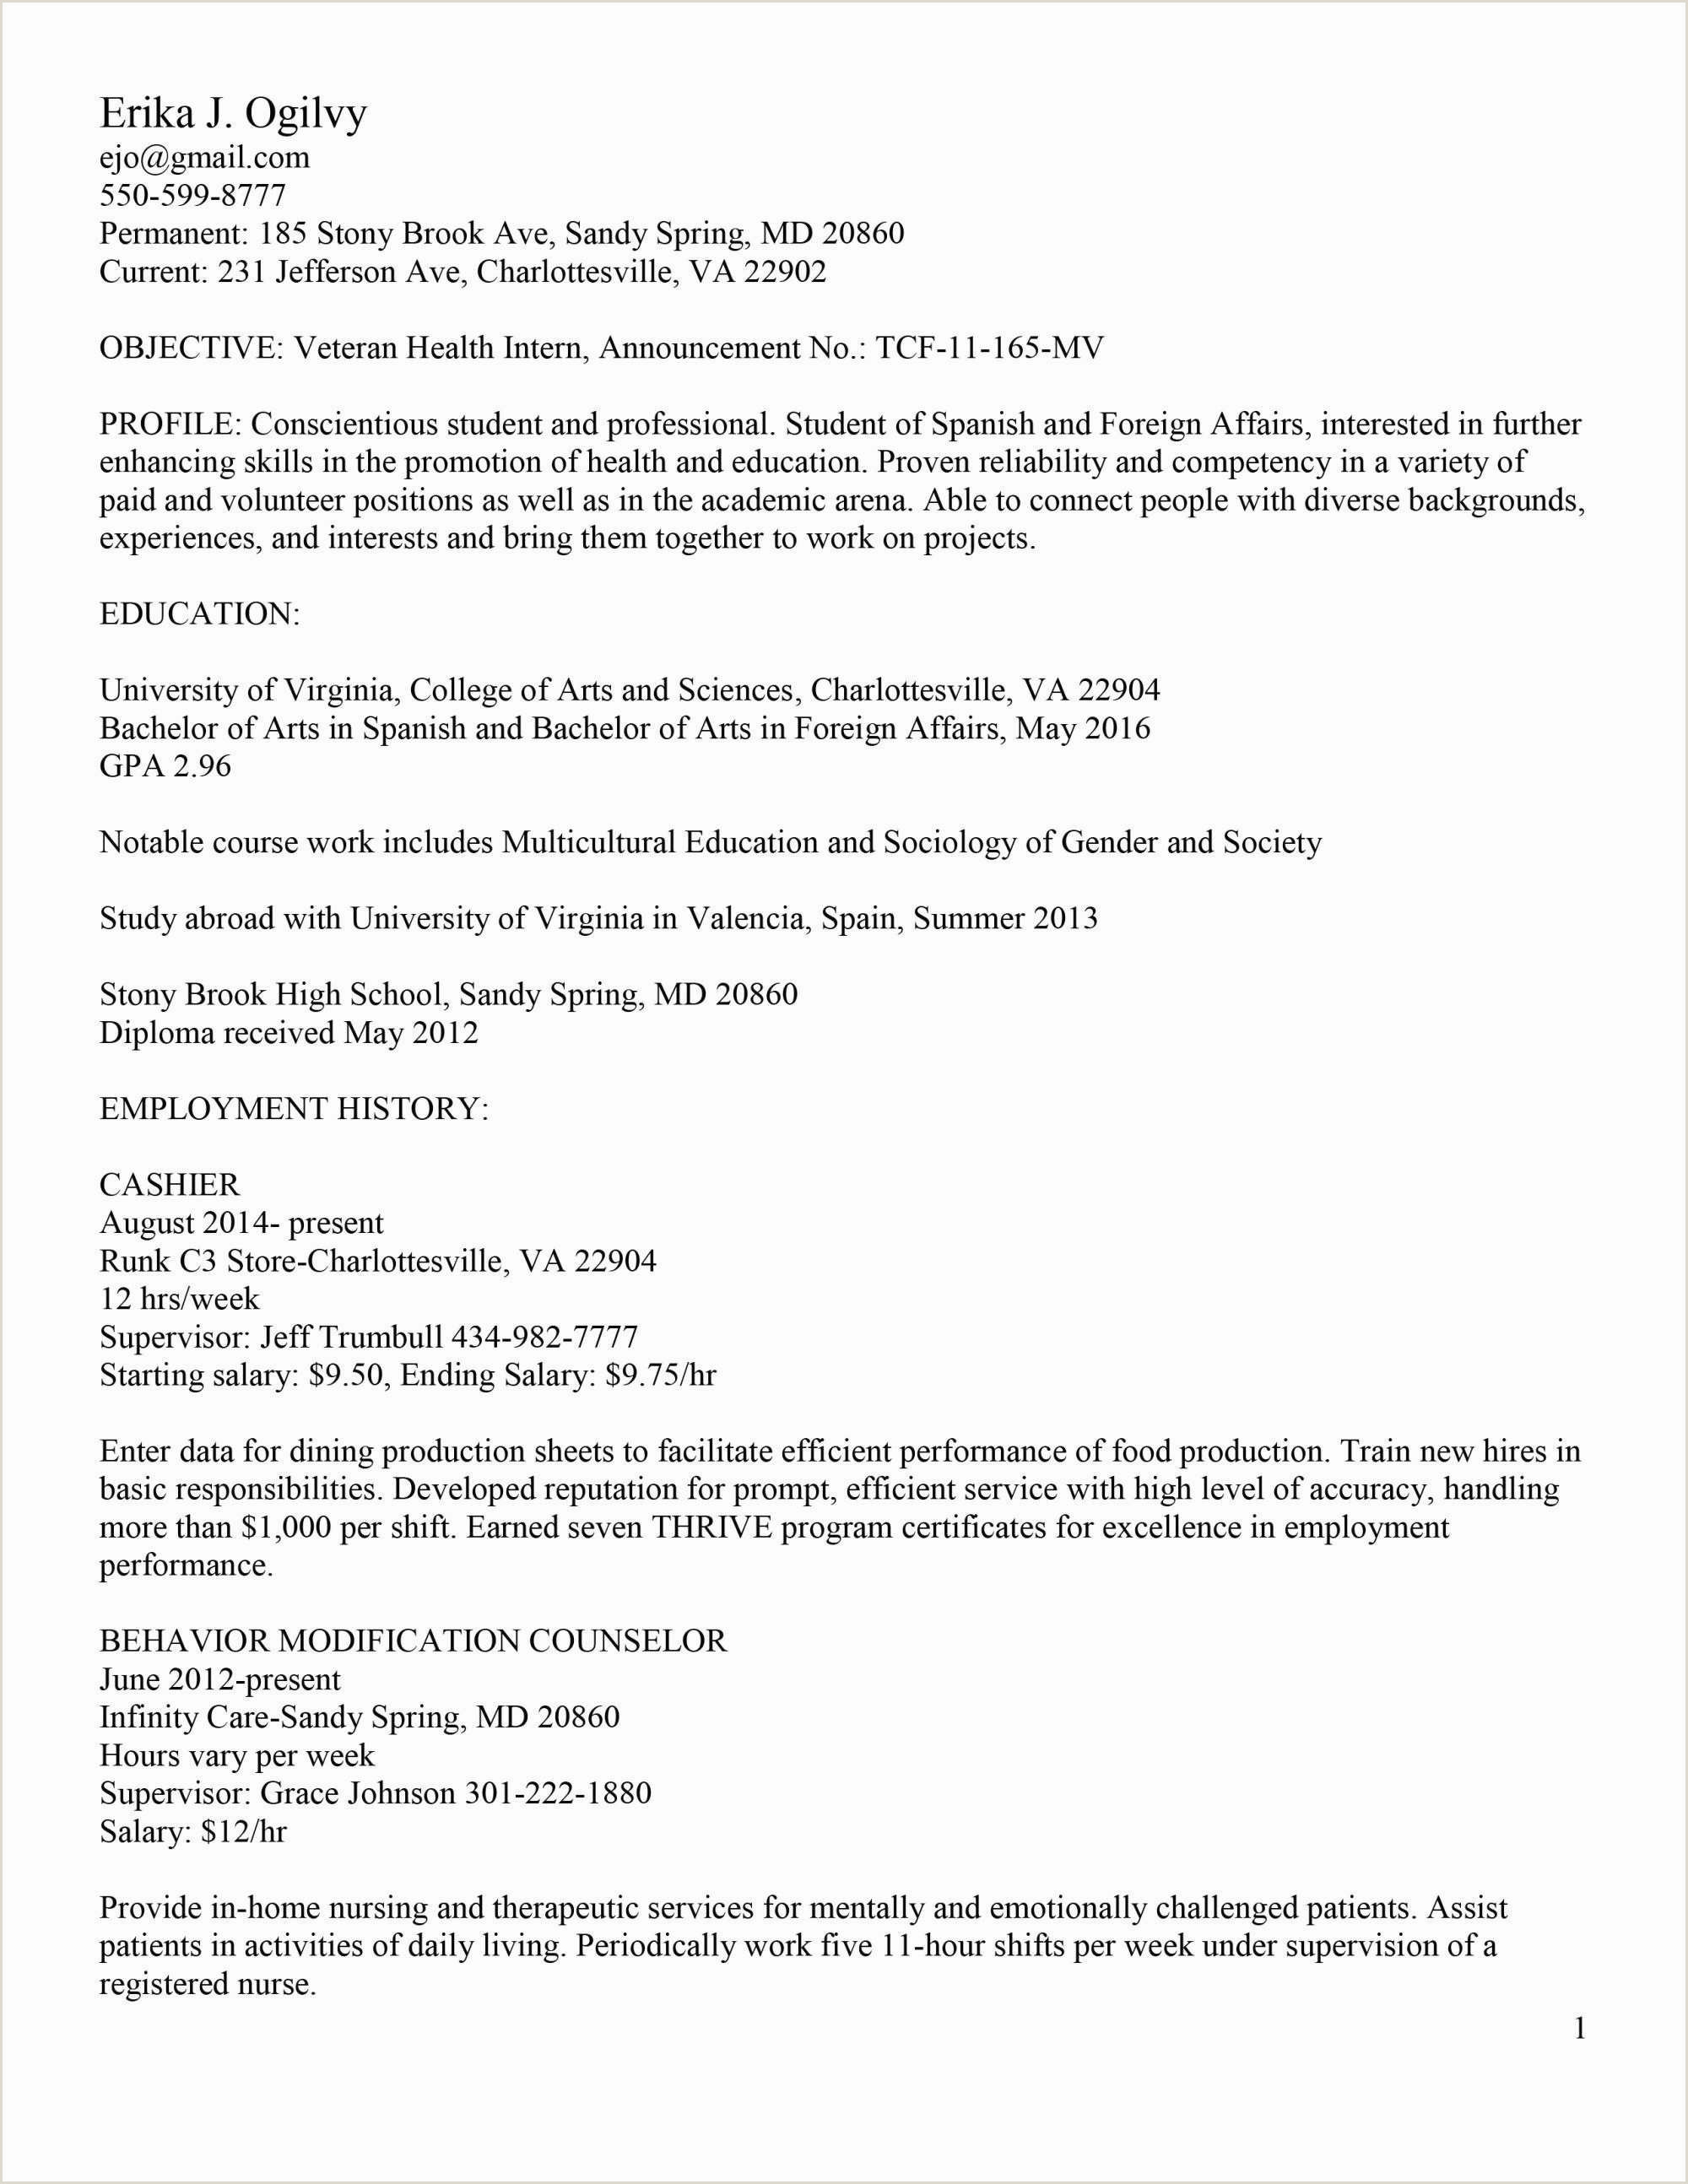 Transition Out Teaching Resume